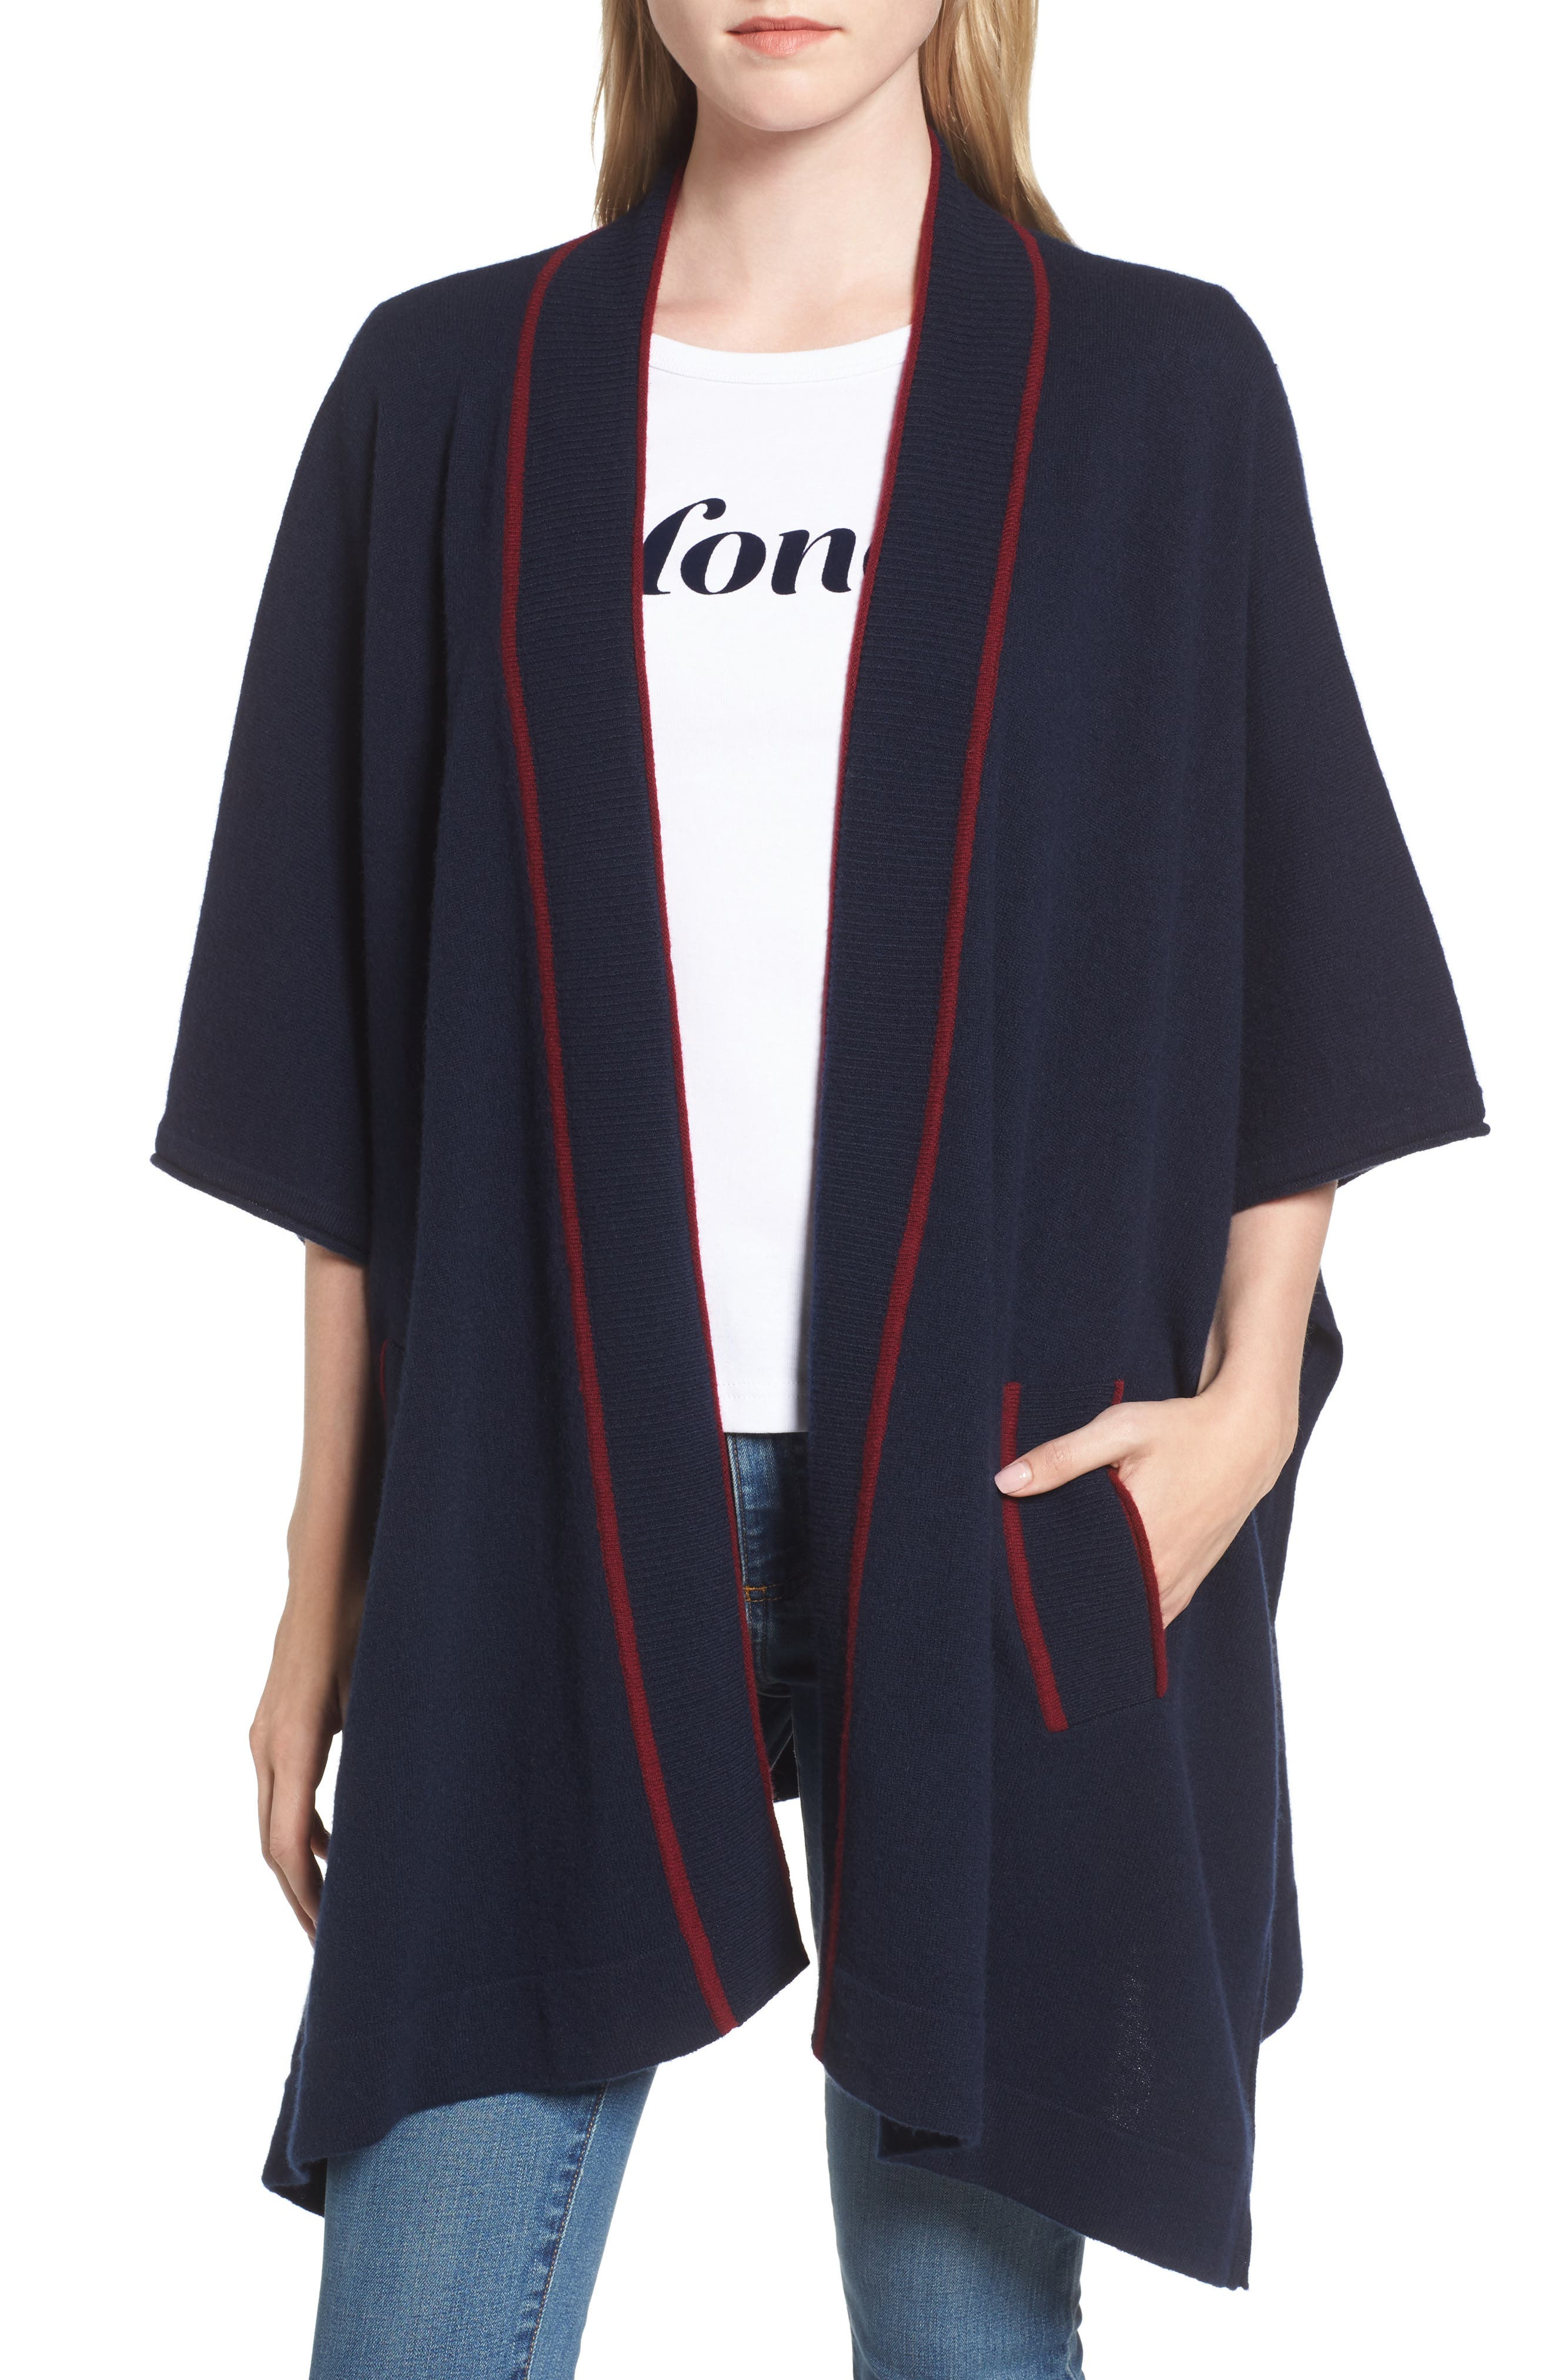 Main Image - Draper James Cora Cape Cardigan